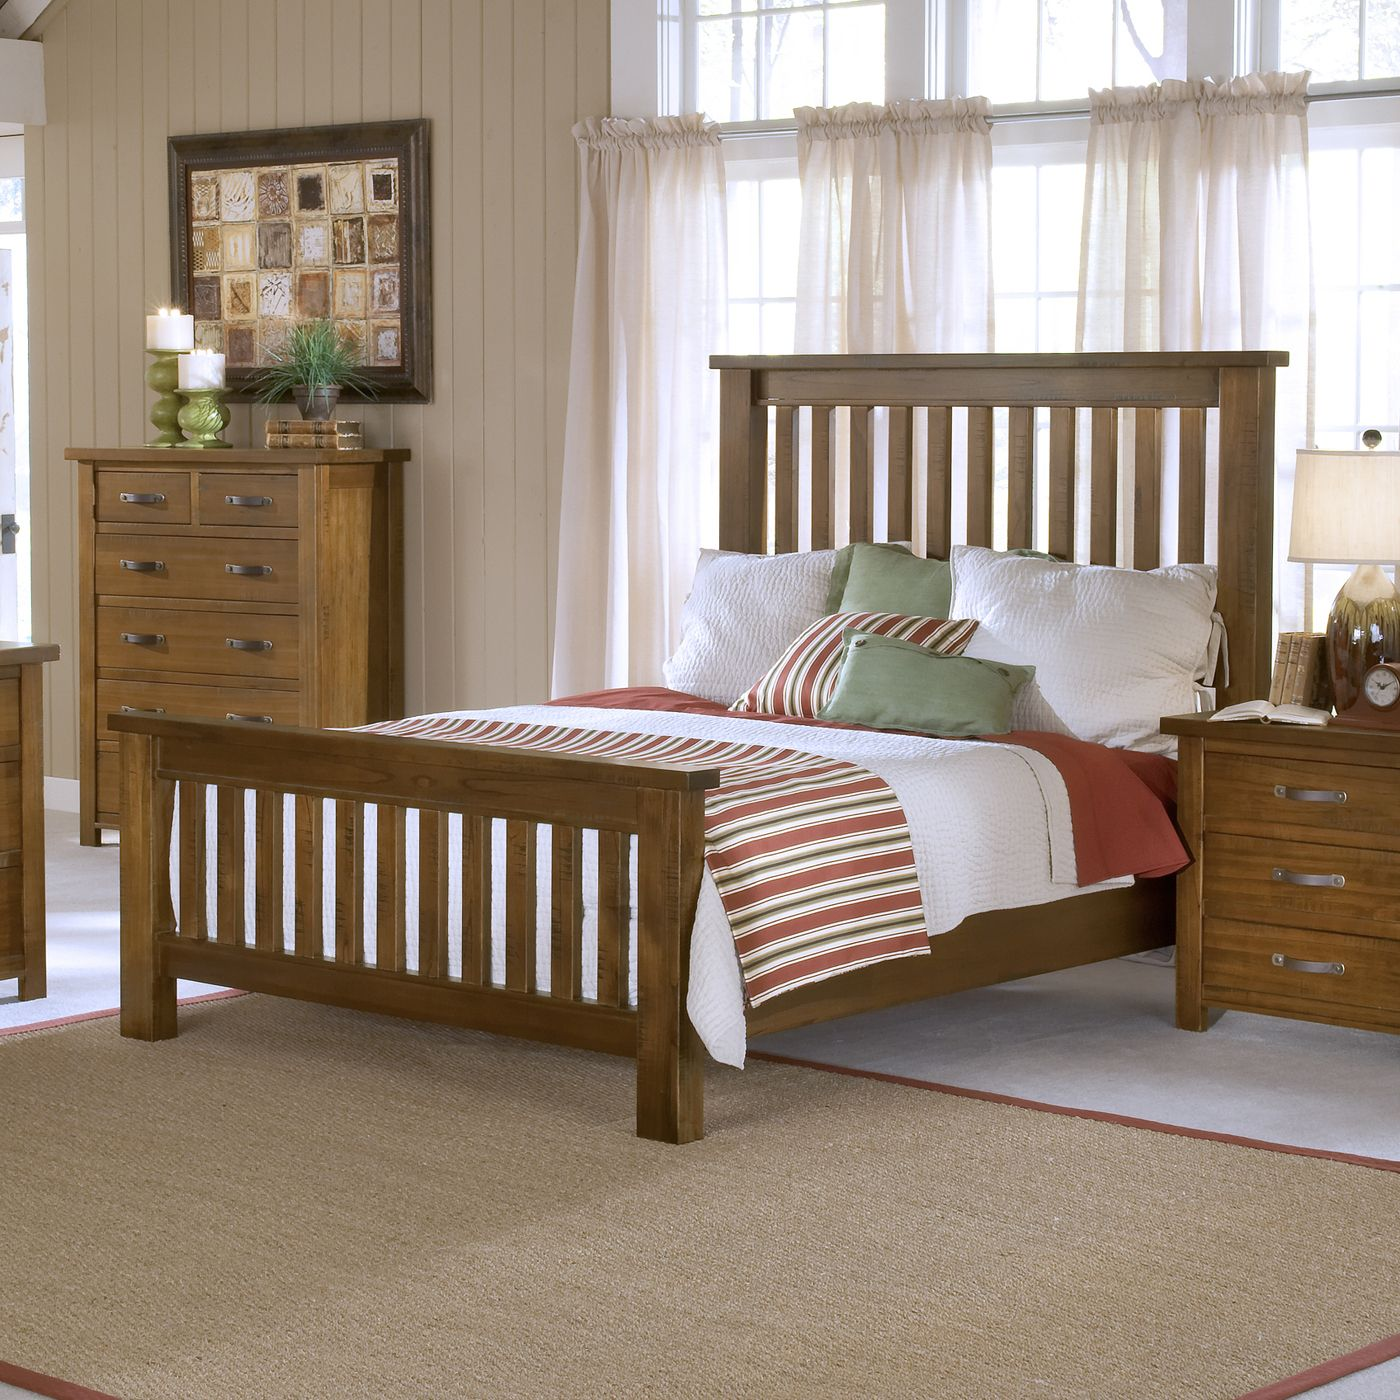 Outback Slat Bed Not too mission... not too rustic